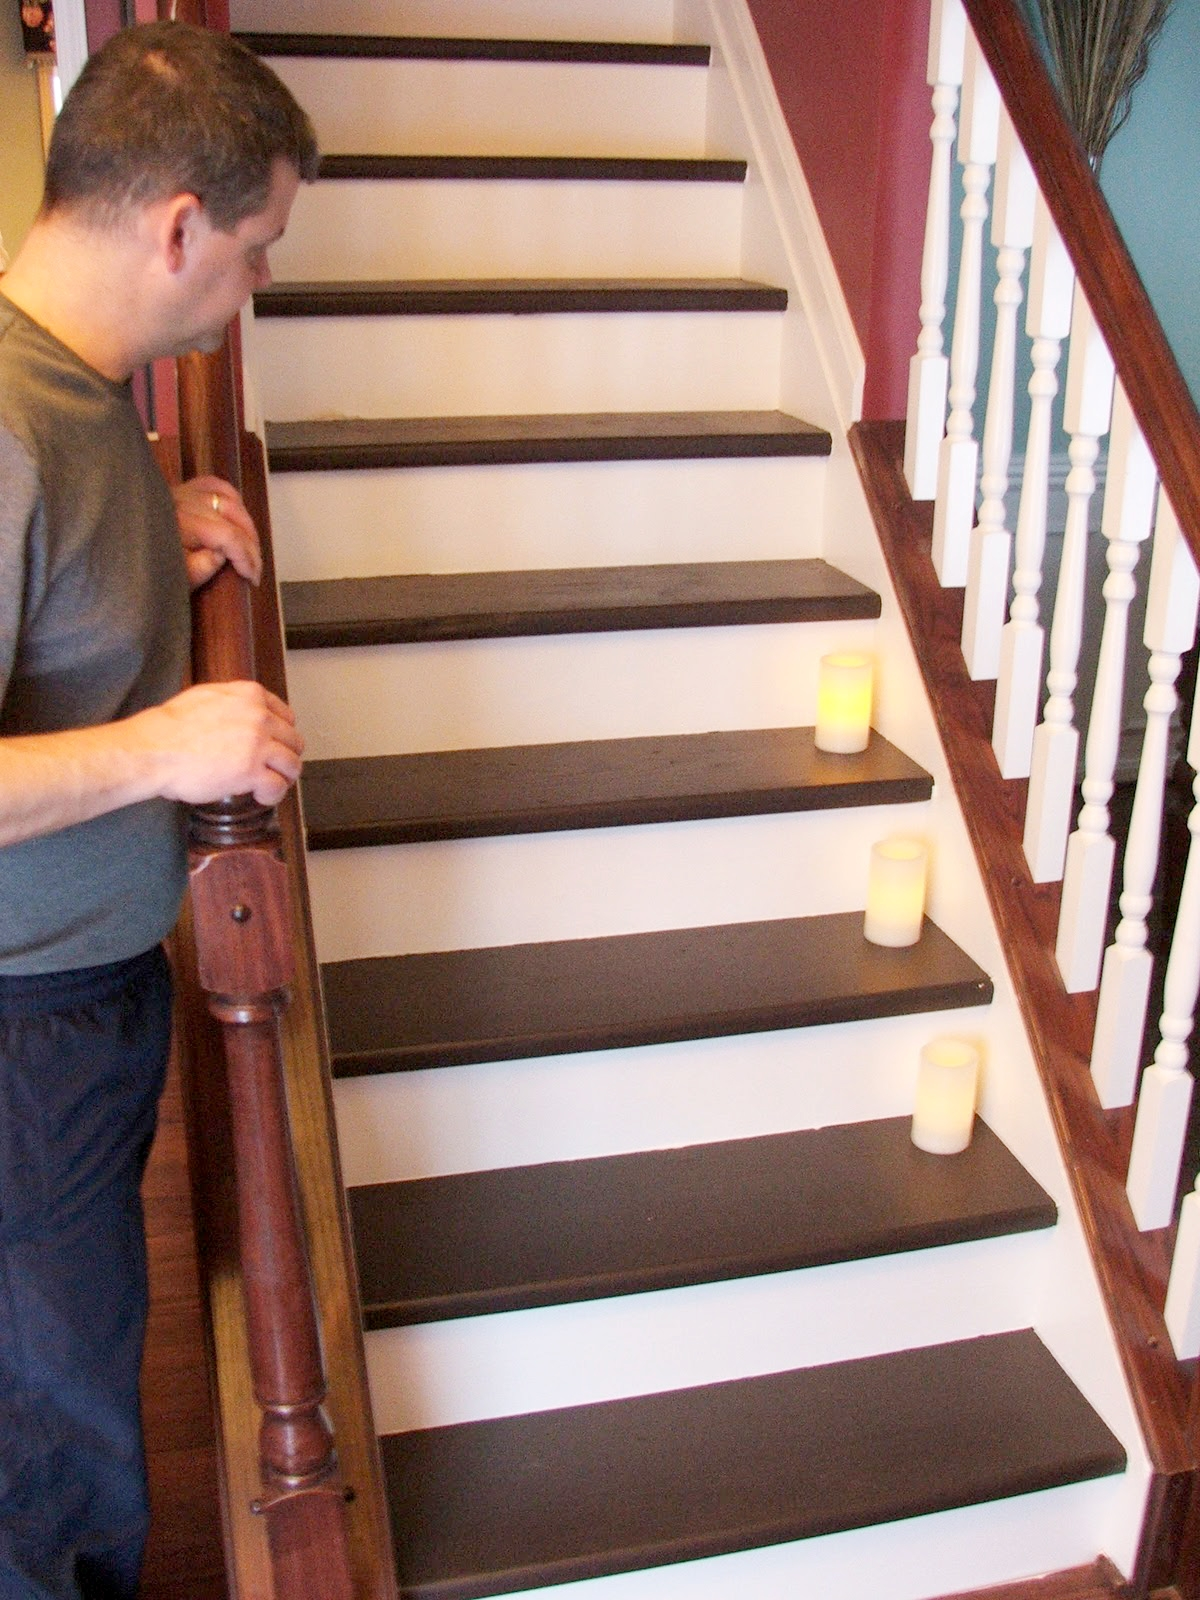 Remodelaholic Under 100 Carpeted Stair To Wooden Tread Makeover Diy Regarding Carpet Treads For Wooden Stairs (Image 12 of 15)